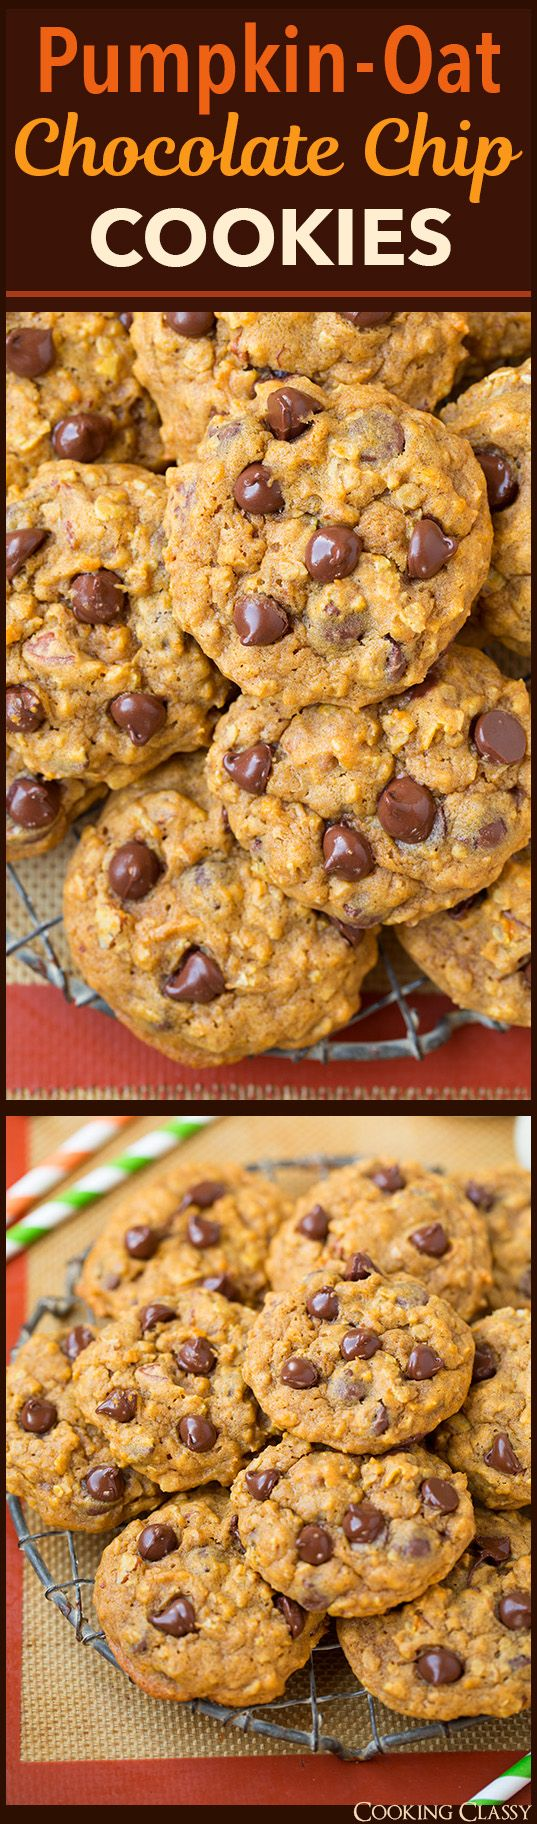 Pumpkin Oat Chocolate Chip Cookies - one of my all time FAVORITE fall cookies! We make them a few times every fall.